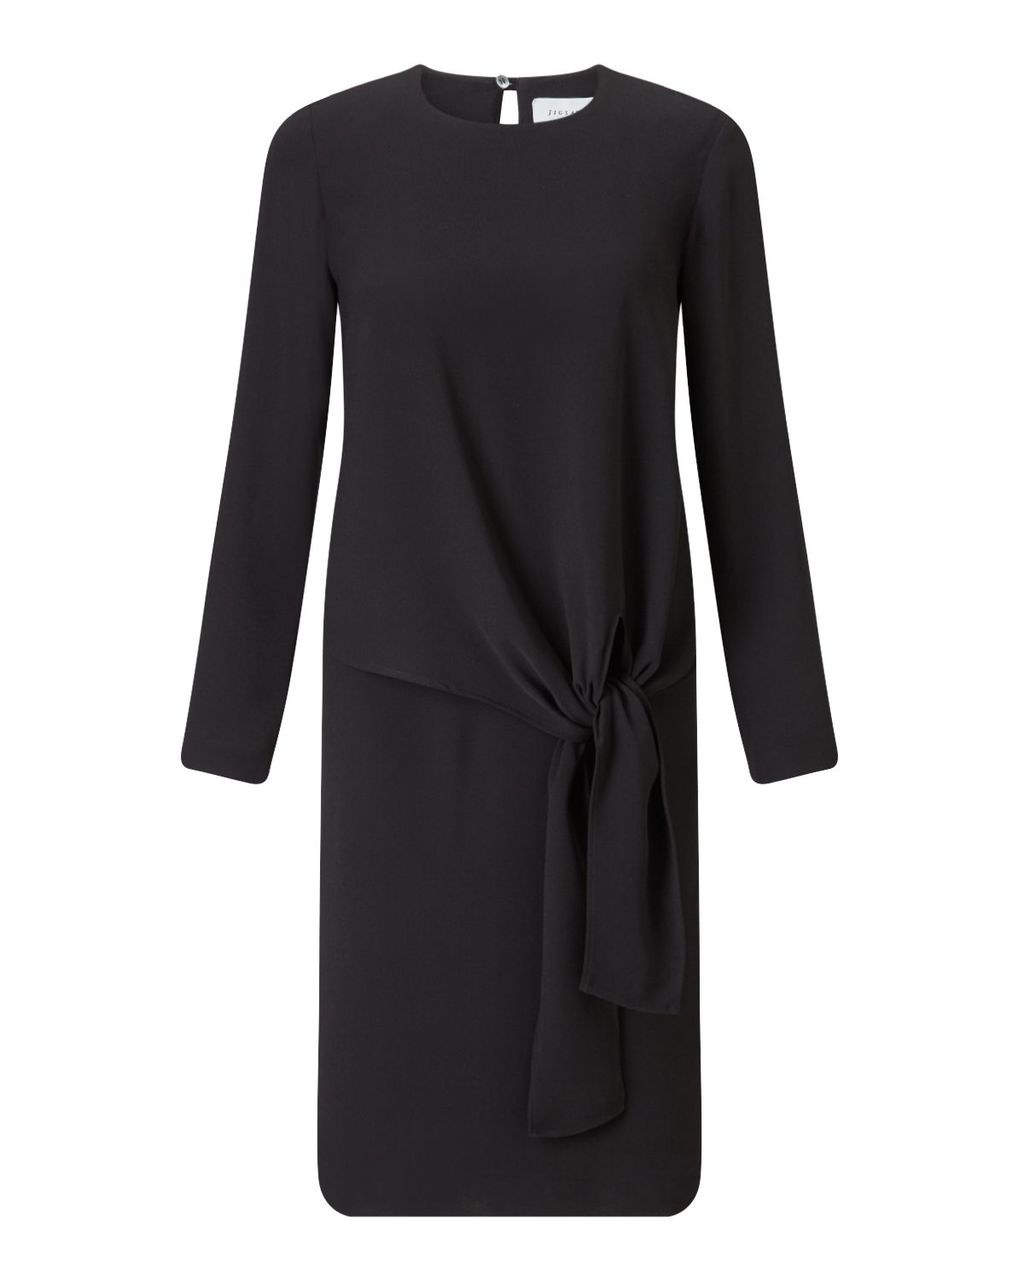 Crepe Tie Front Dress, Black - style: shift; length: below the knee; neckline: round neck; pattern: plain; predominant colour: black; occasions: work, occasion; fit: body skimming; fibres: polyester/polyamide - 100%; sleeve length: long sleeve; sleeve style: standard; texture group: crepes; pattern type: fabric; wardrobe: investment; season: a/w 2016